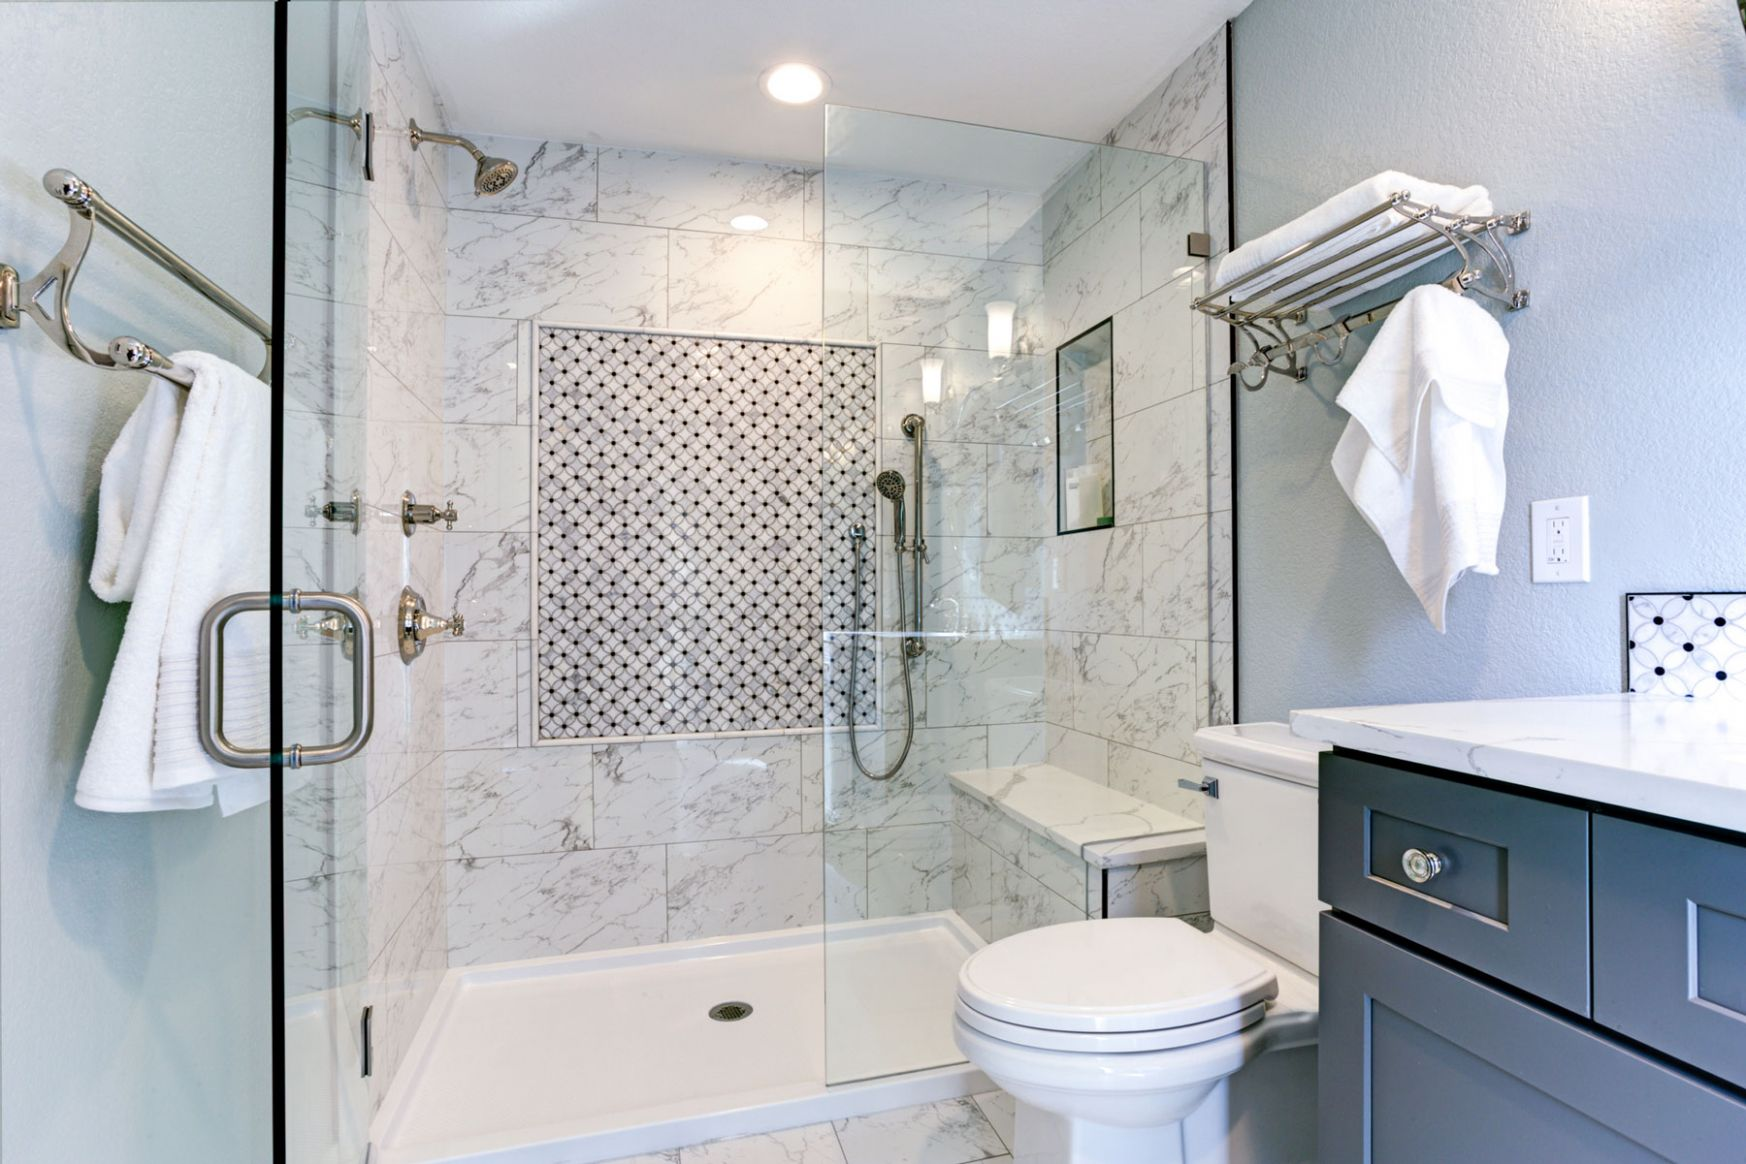 Bathroom Design Tricks for a Cleaner-Looking Bathroom | Real Simple - bathroom ideas pictures